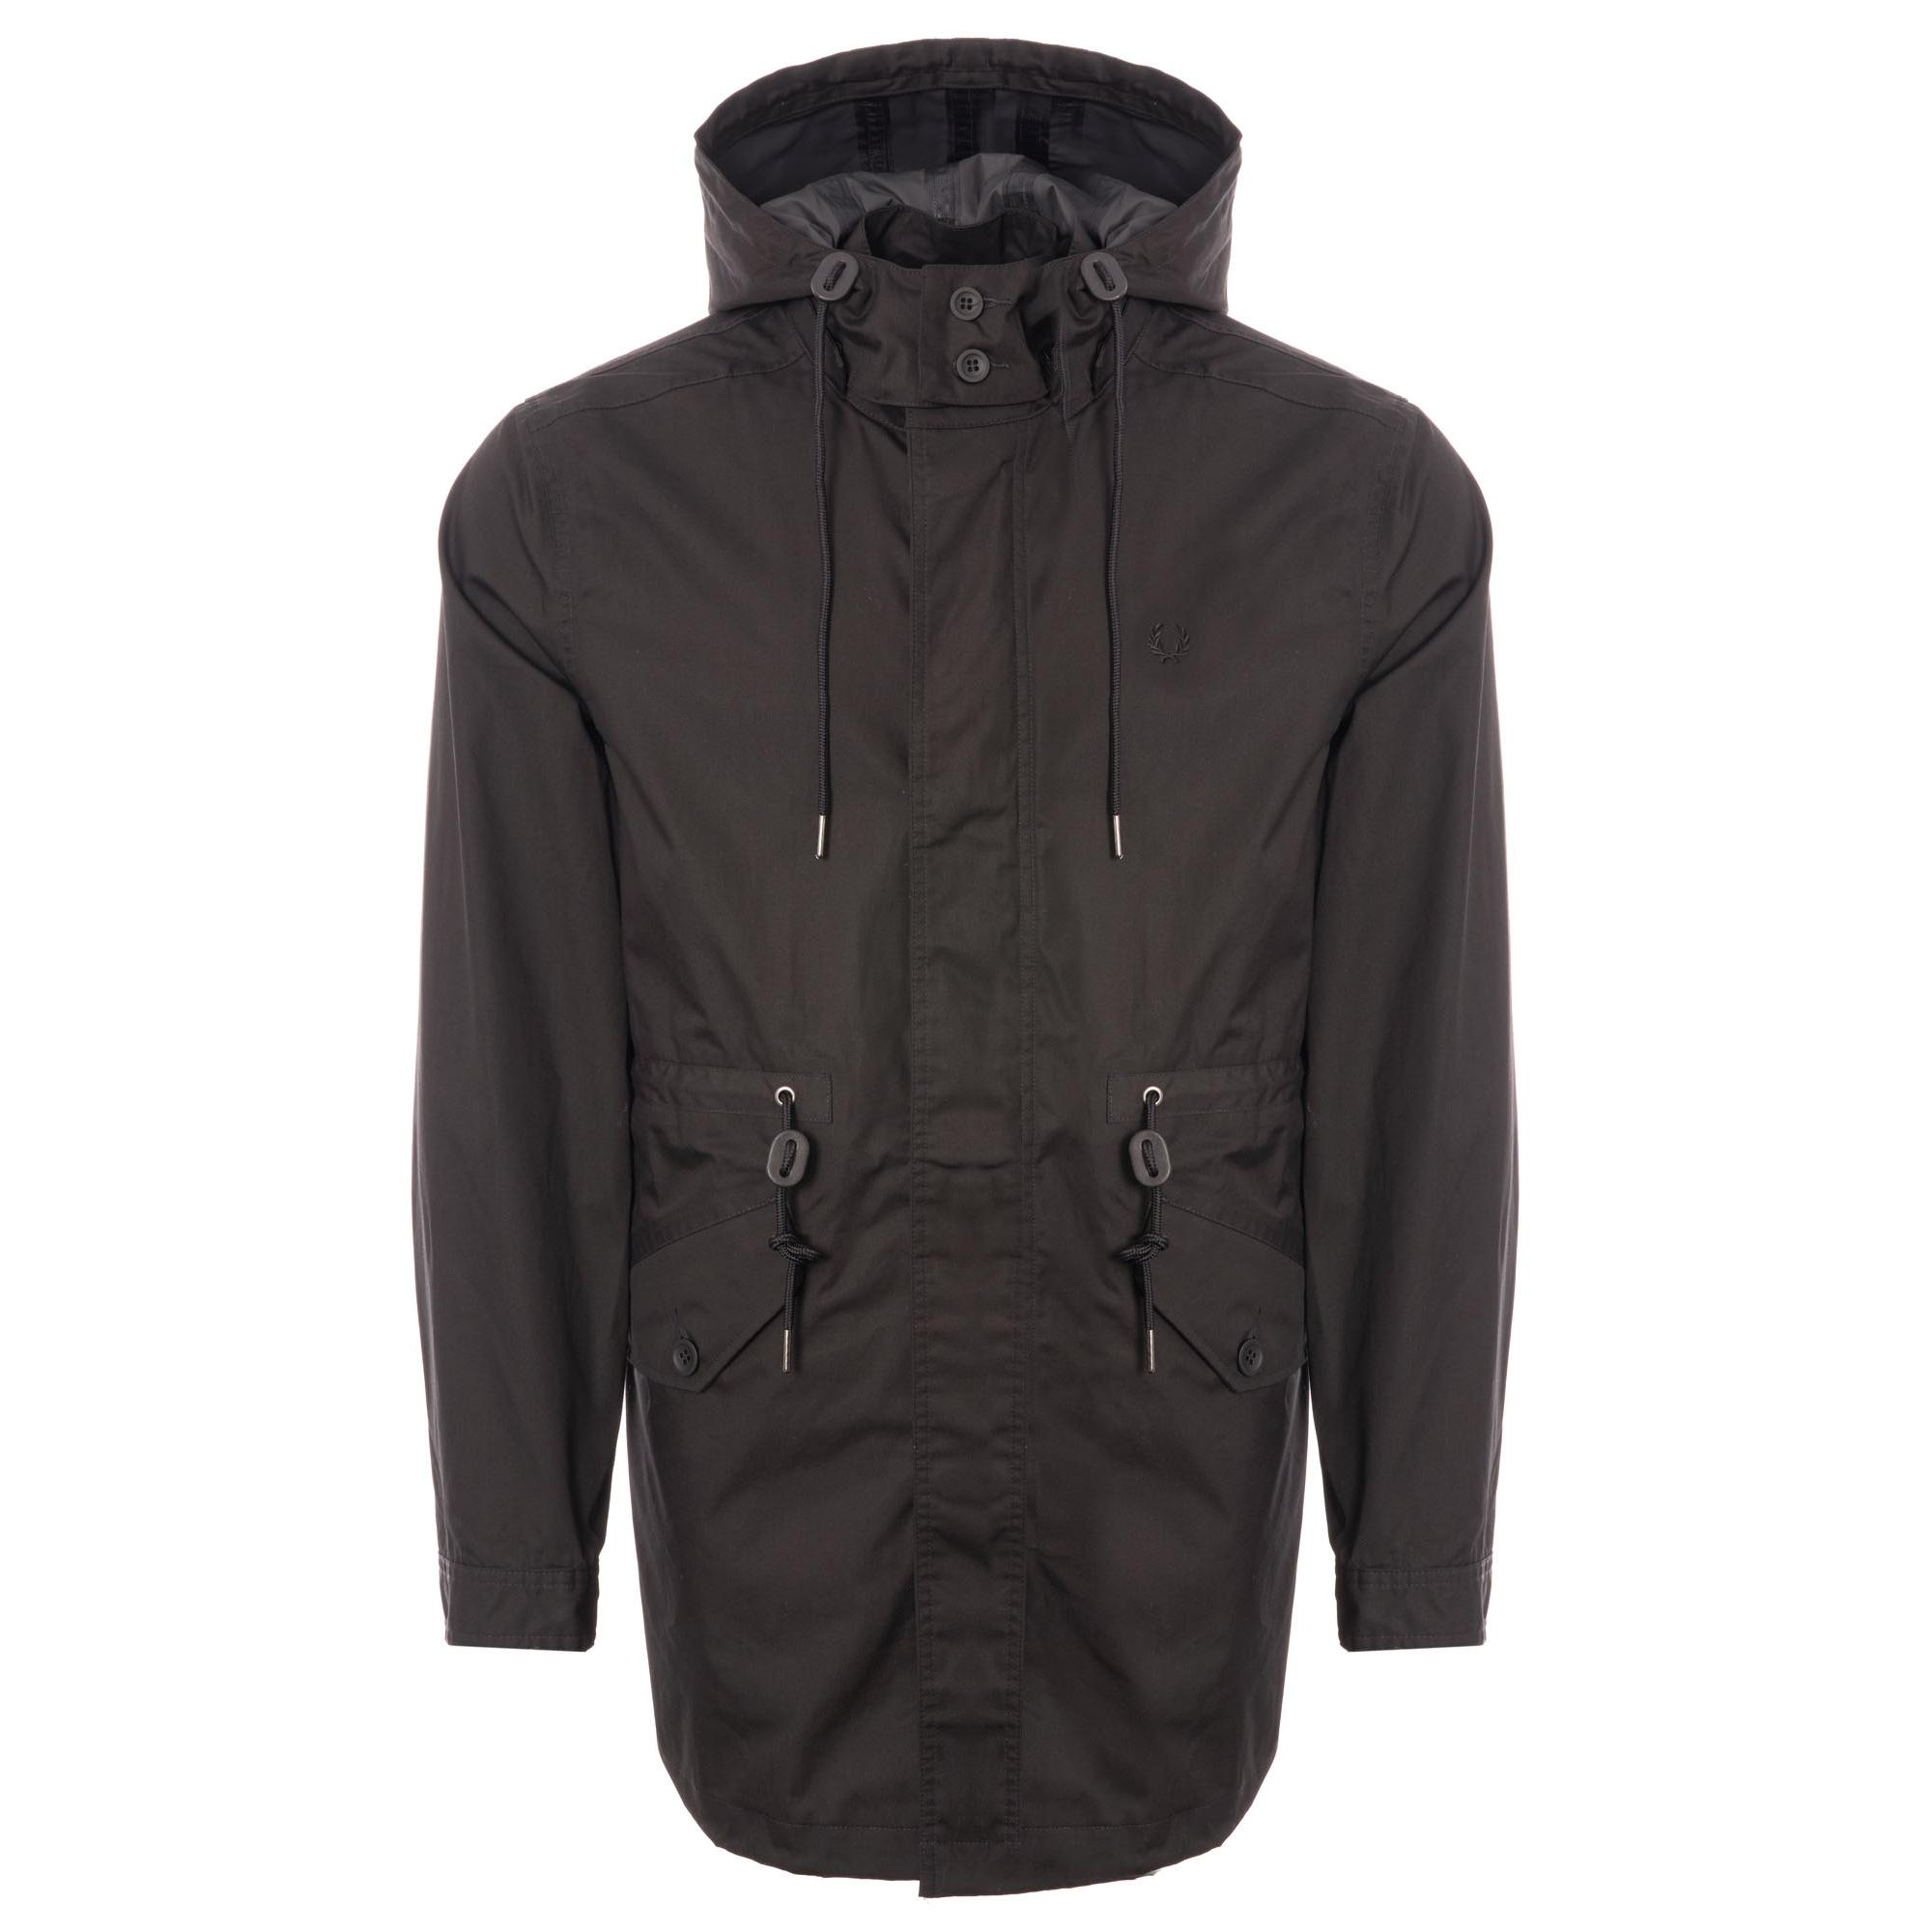 aa06c23e2e8d8 Fred Perry Authentic Fishtail Parka in Black for Men - Lyst